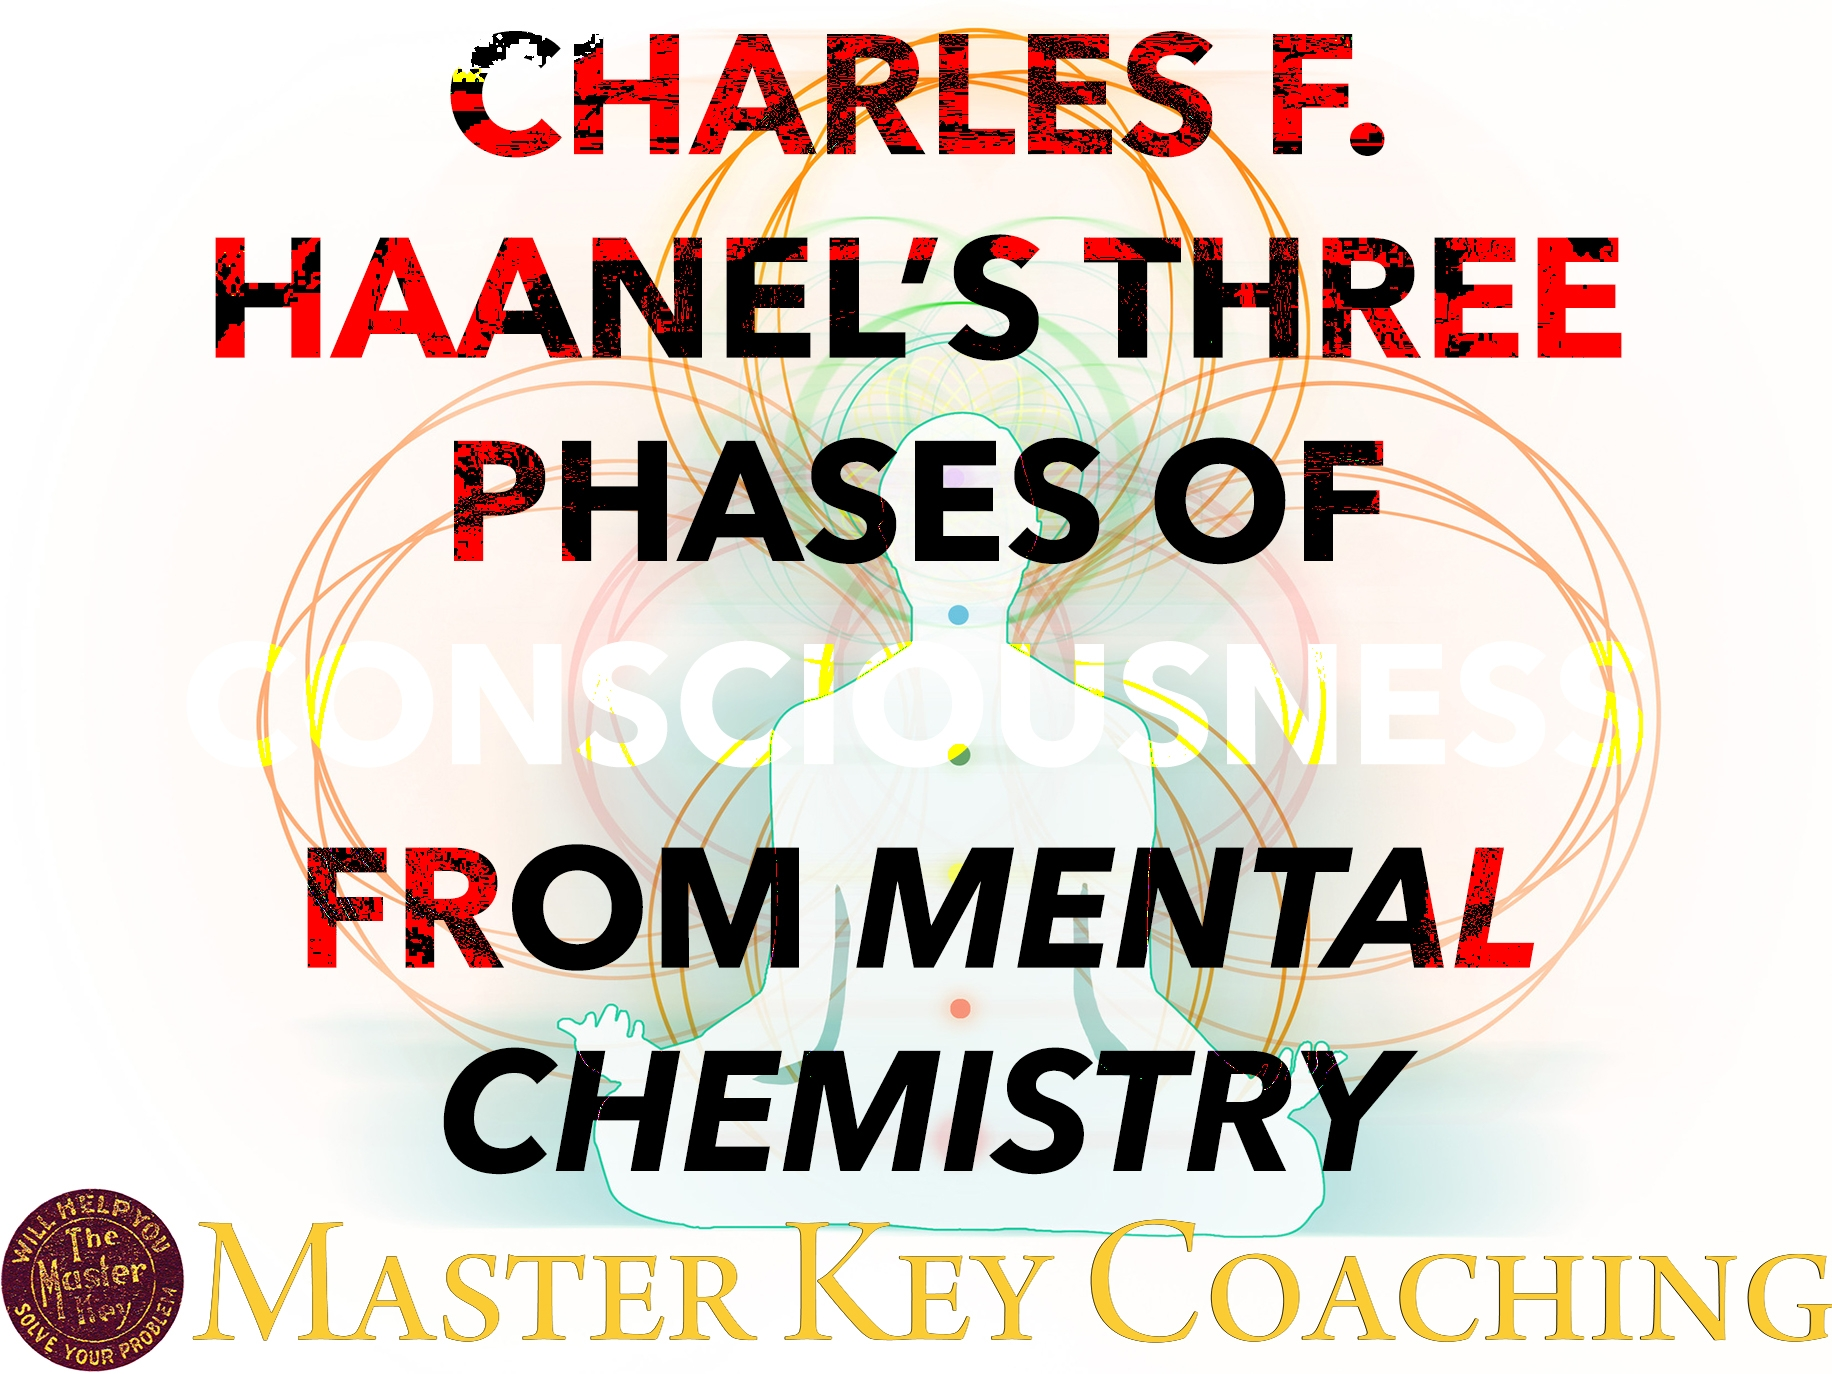 Chalres F. Haanel and the Three Phases of Consciousness